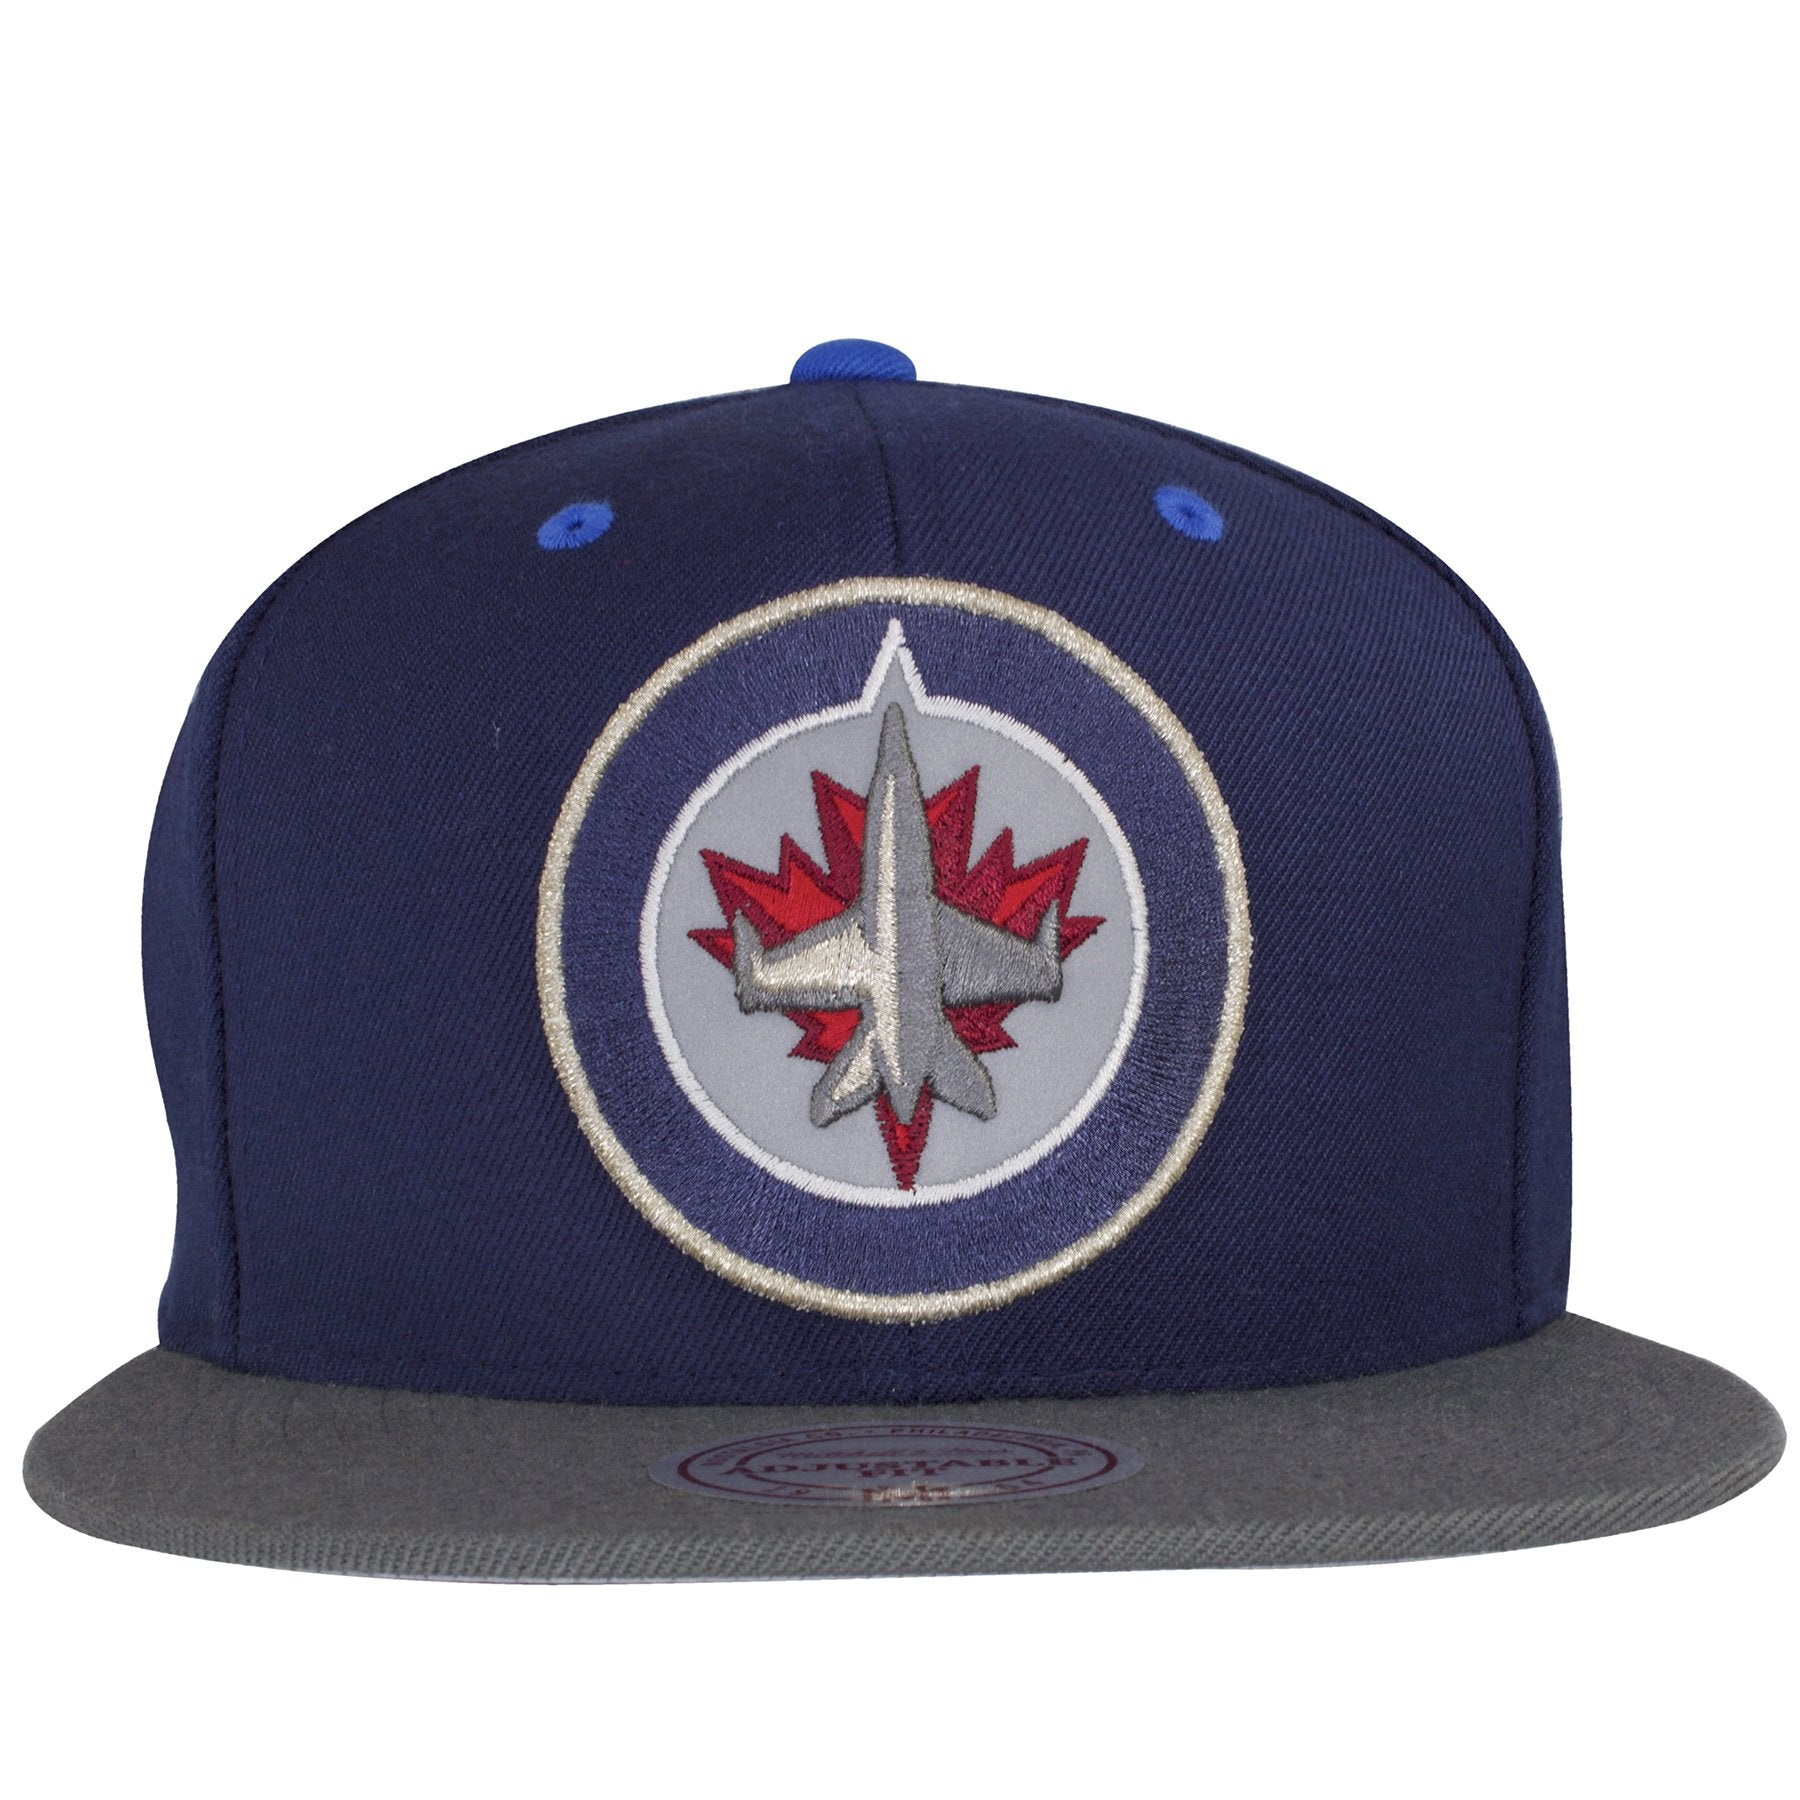 on the winnipeg jets reflective snapback hat is the winnipeg jets logo  embroidered on the front 3be6b86a58cd